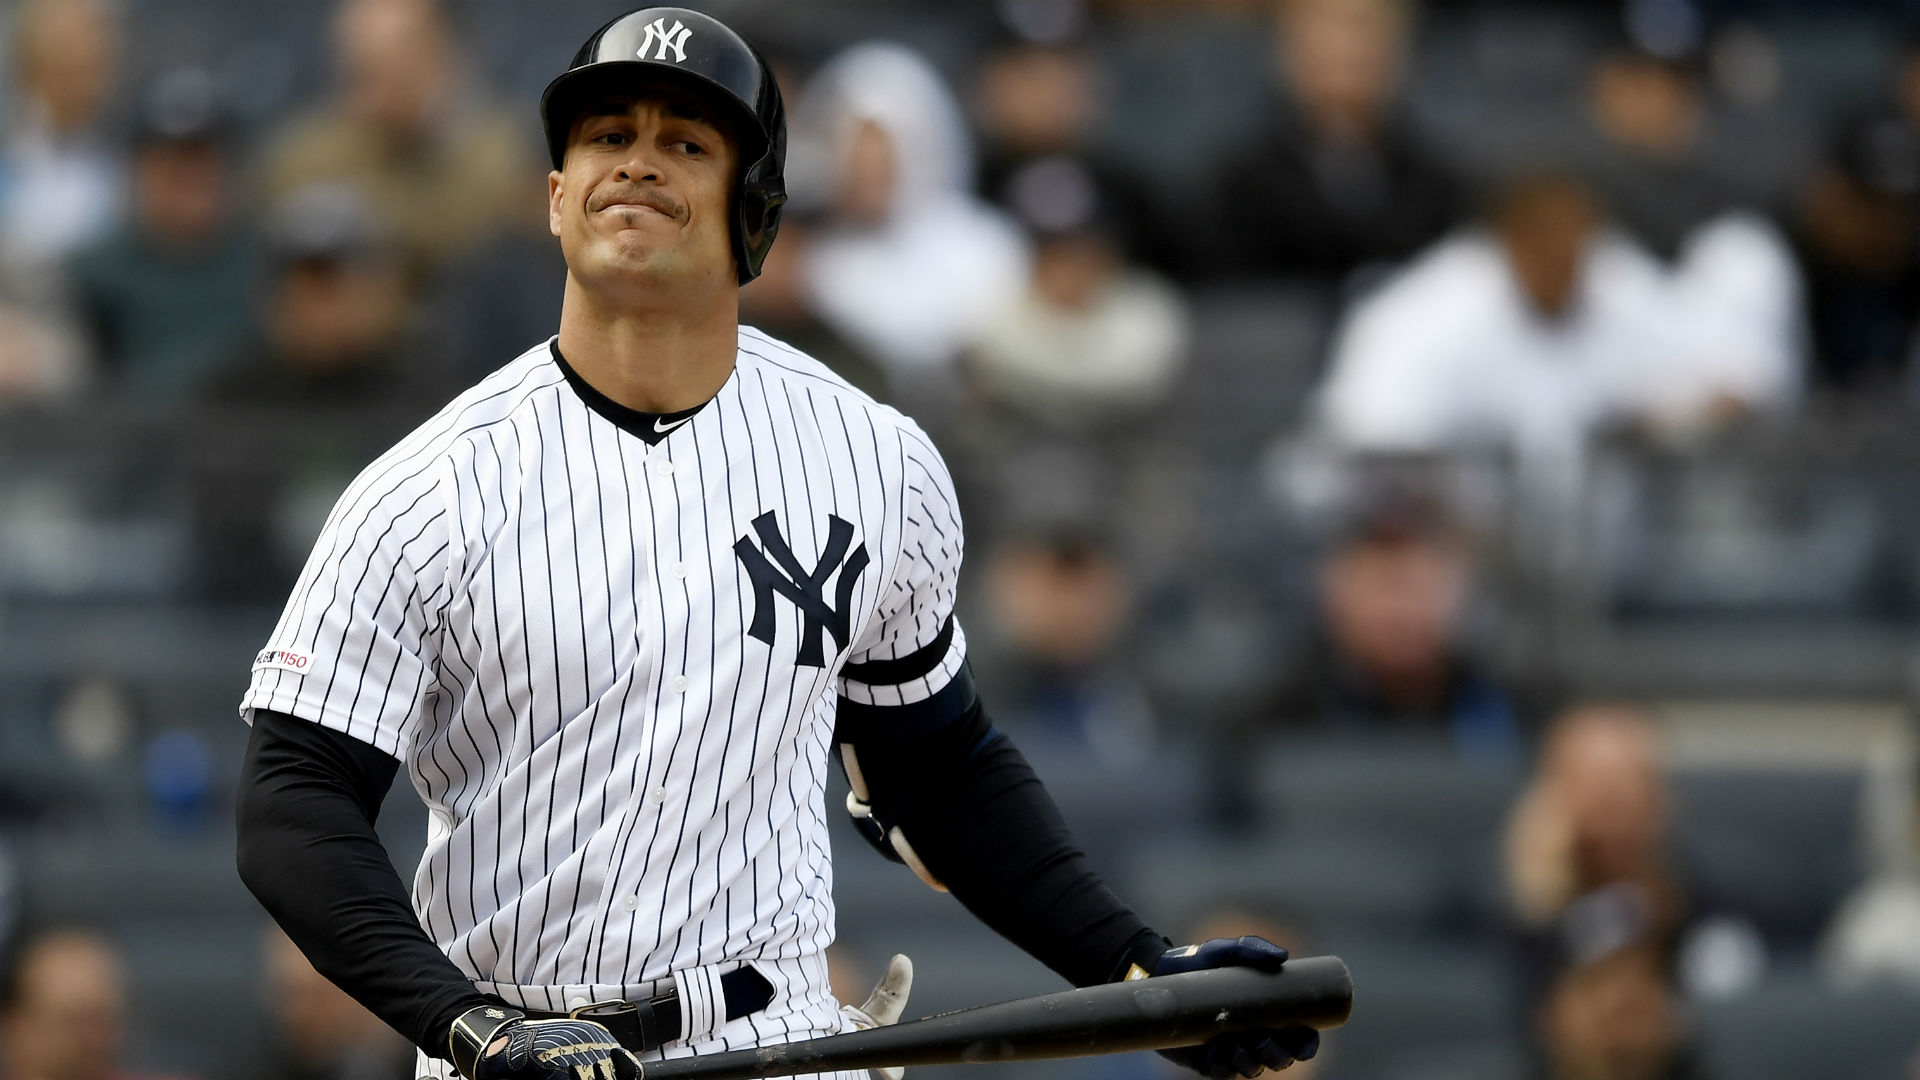 Giancarlo Stanton's absence is a big reason why the Yankees lost the ALCS.